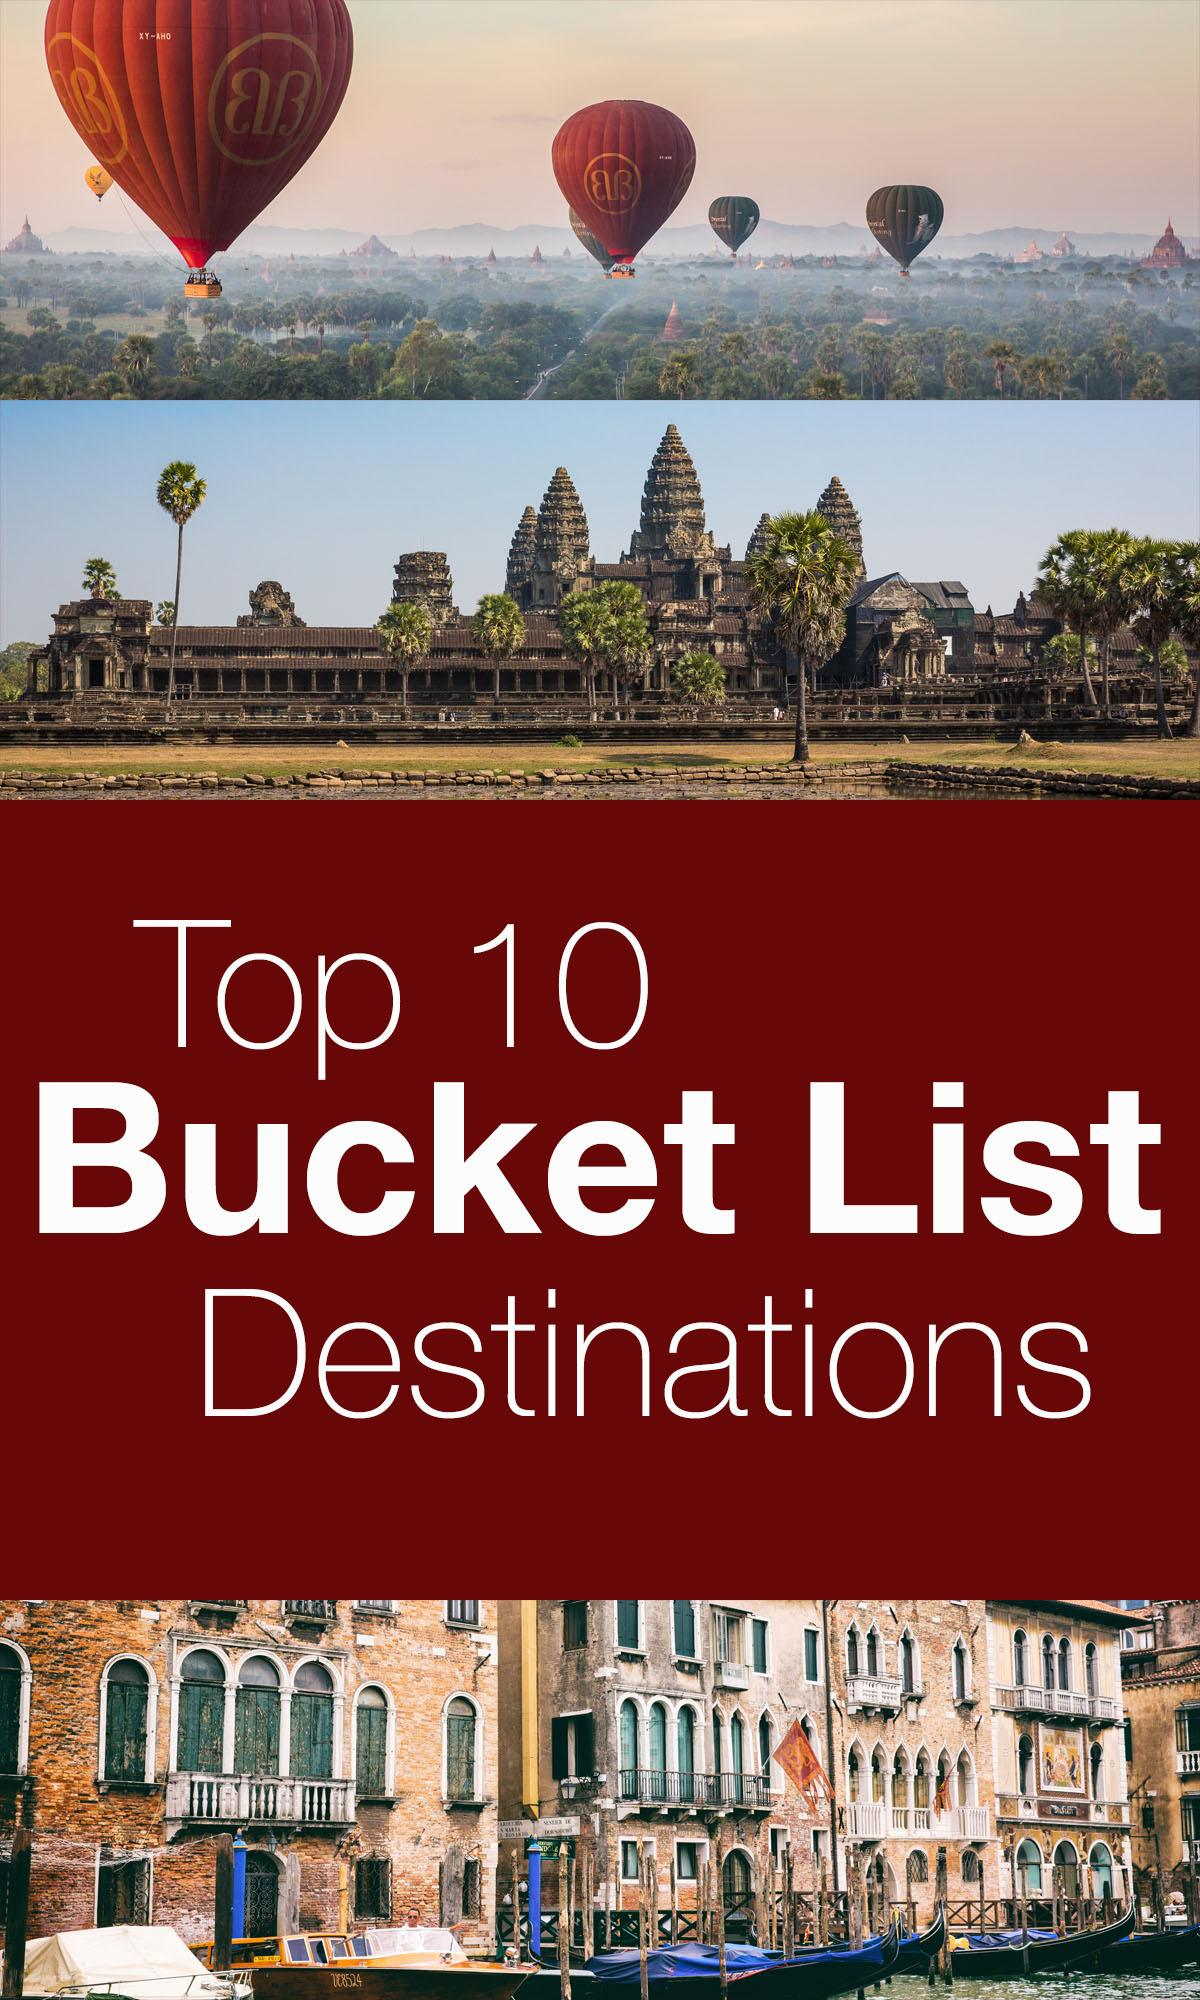 Top 10 Bucket List Destinations